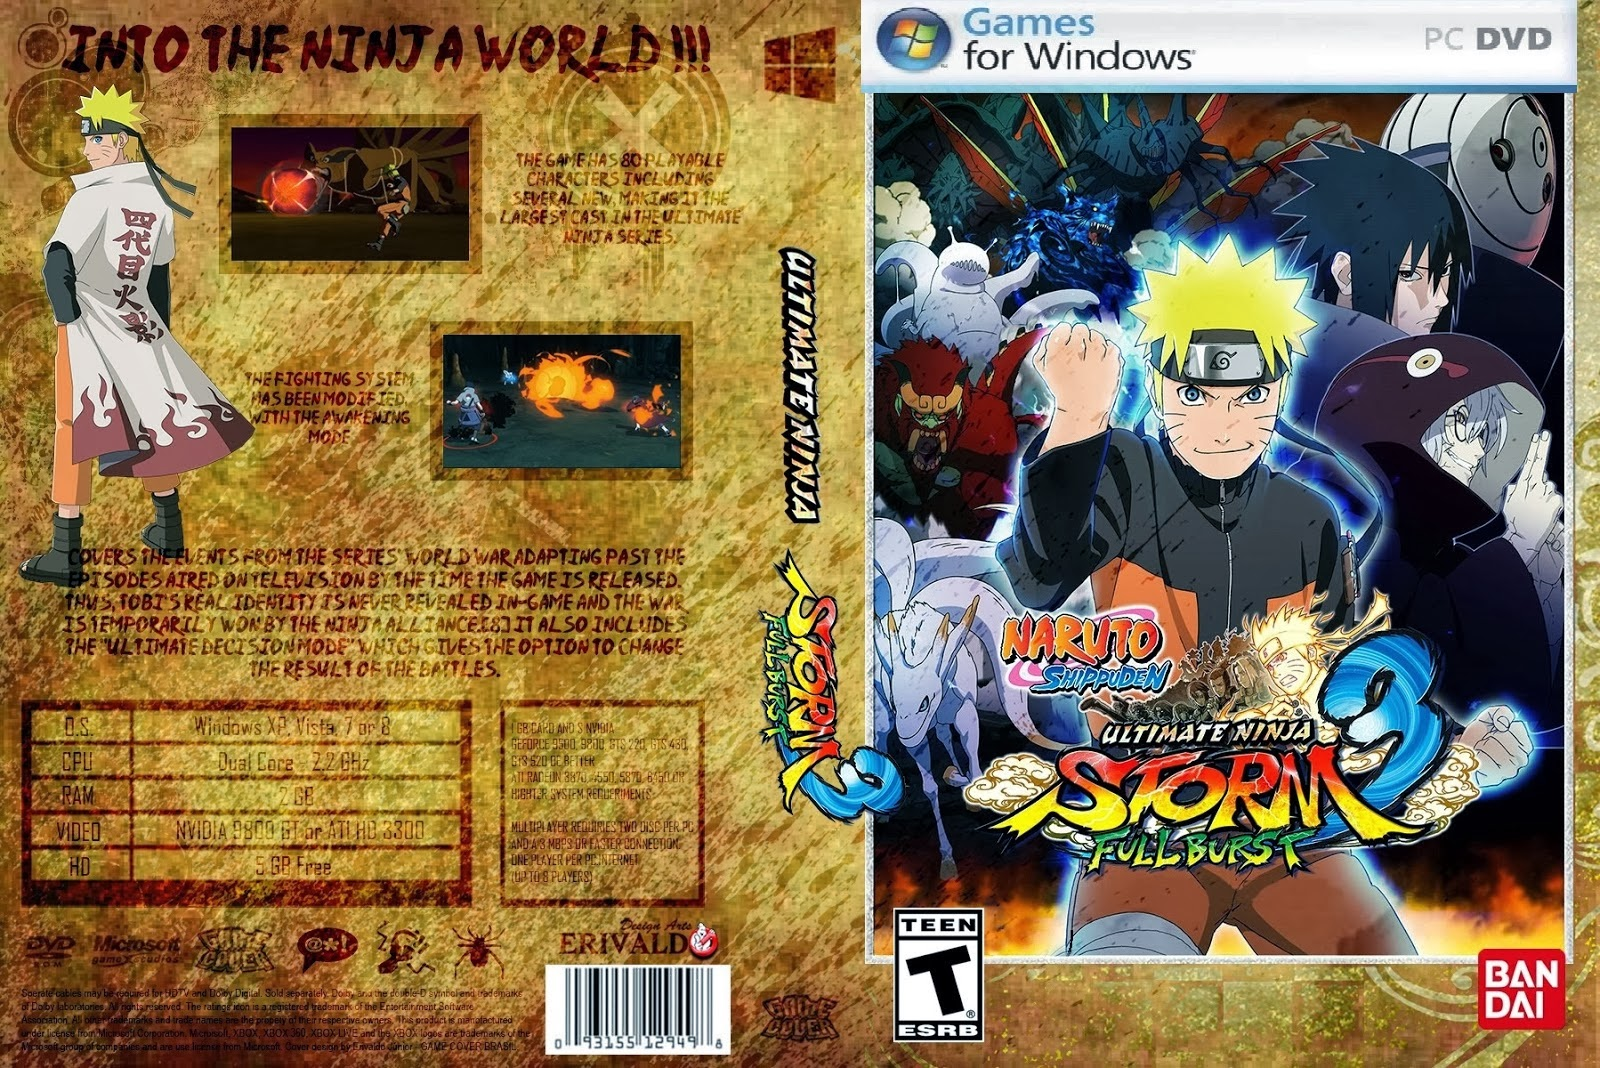 NARUTO SHIPPUDEN Ultimate Ninja STORM 3 Full Burst PC DVD Capa